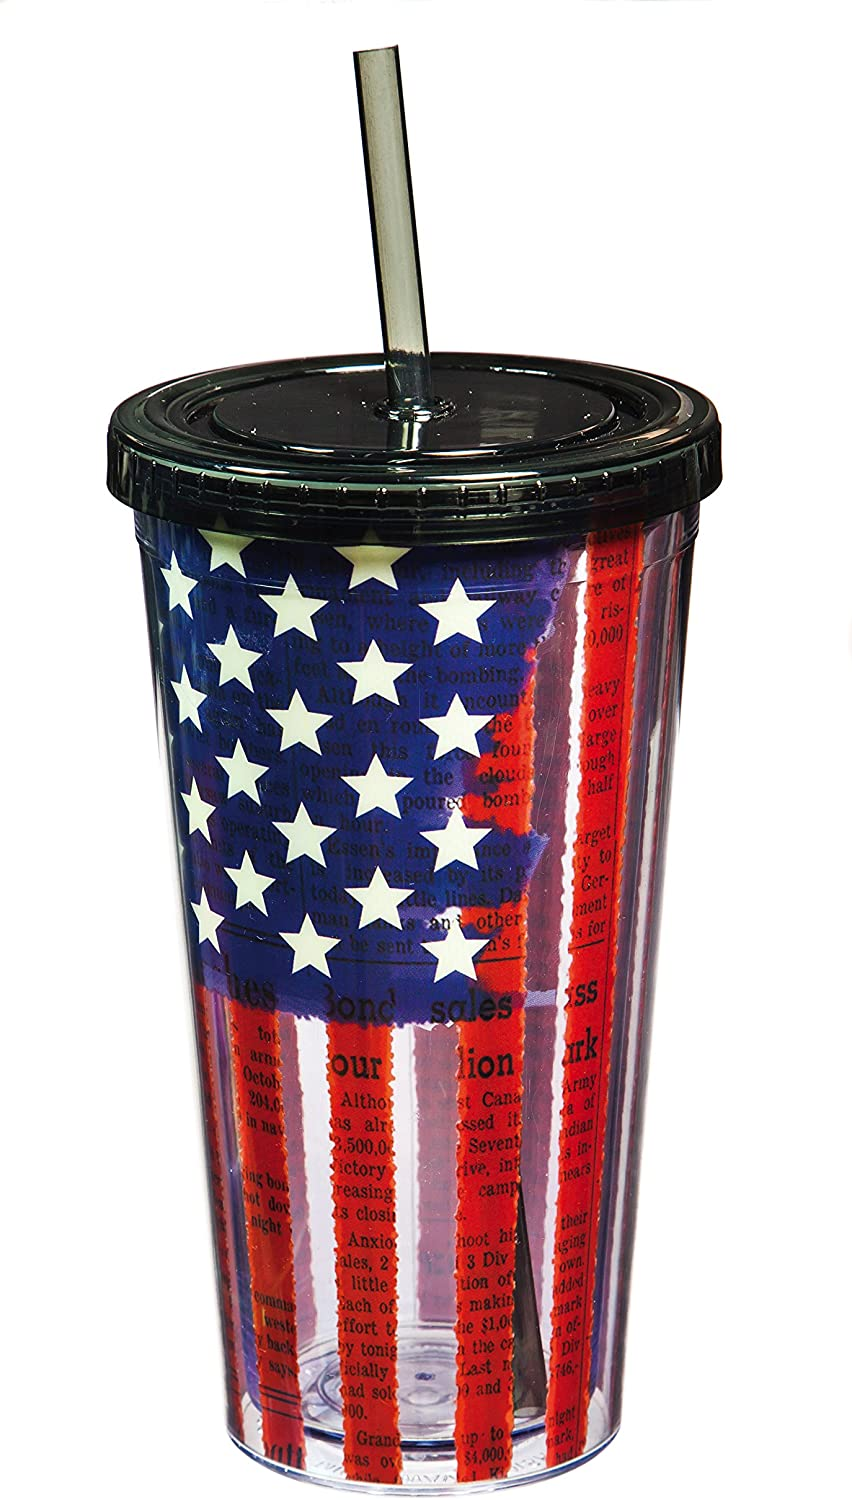 Cypress Home Land of Liberty XL Insulated Tumbler with Straw, 20 ounces